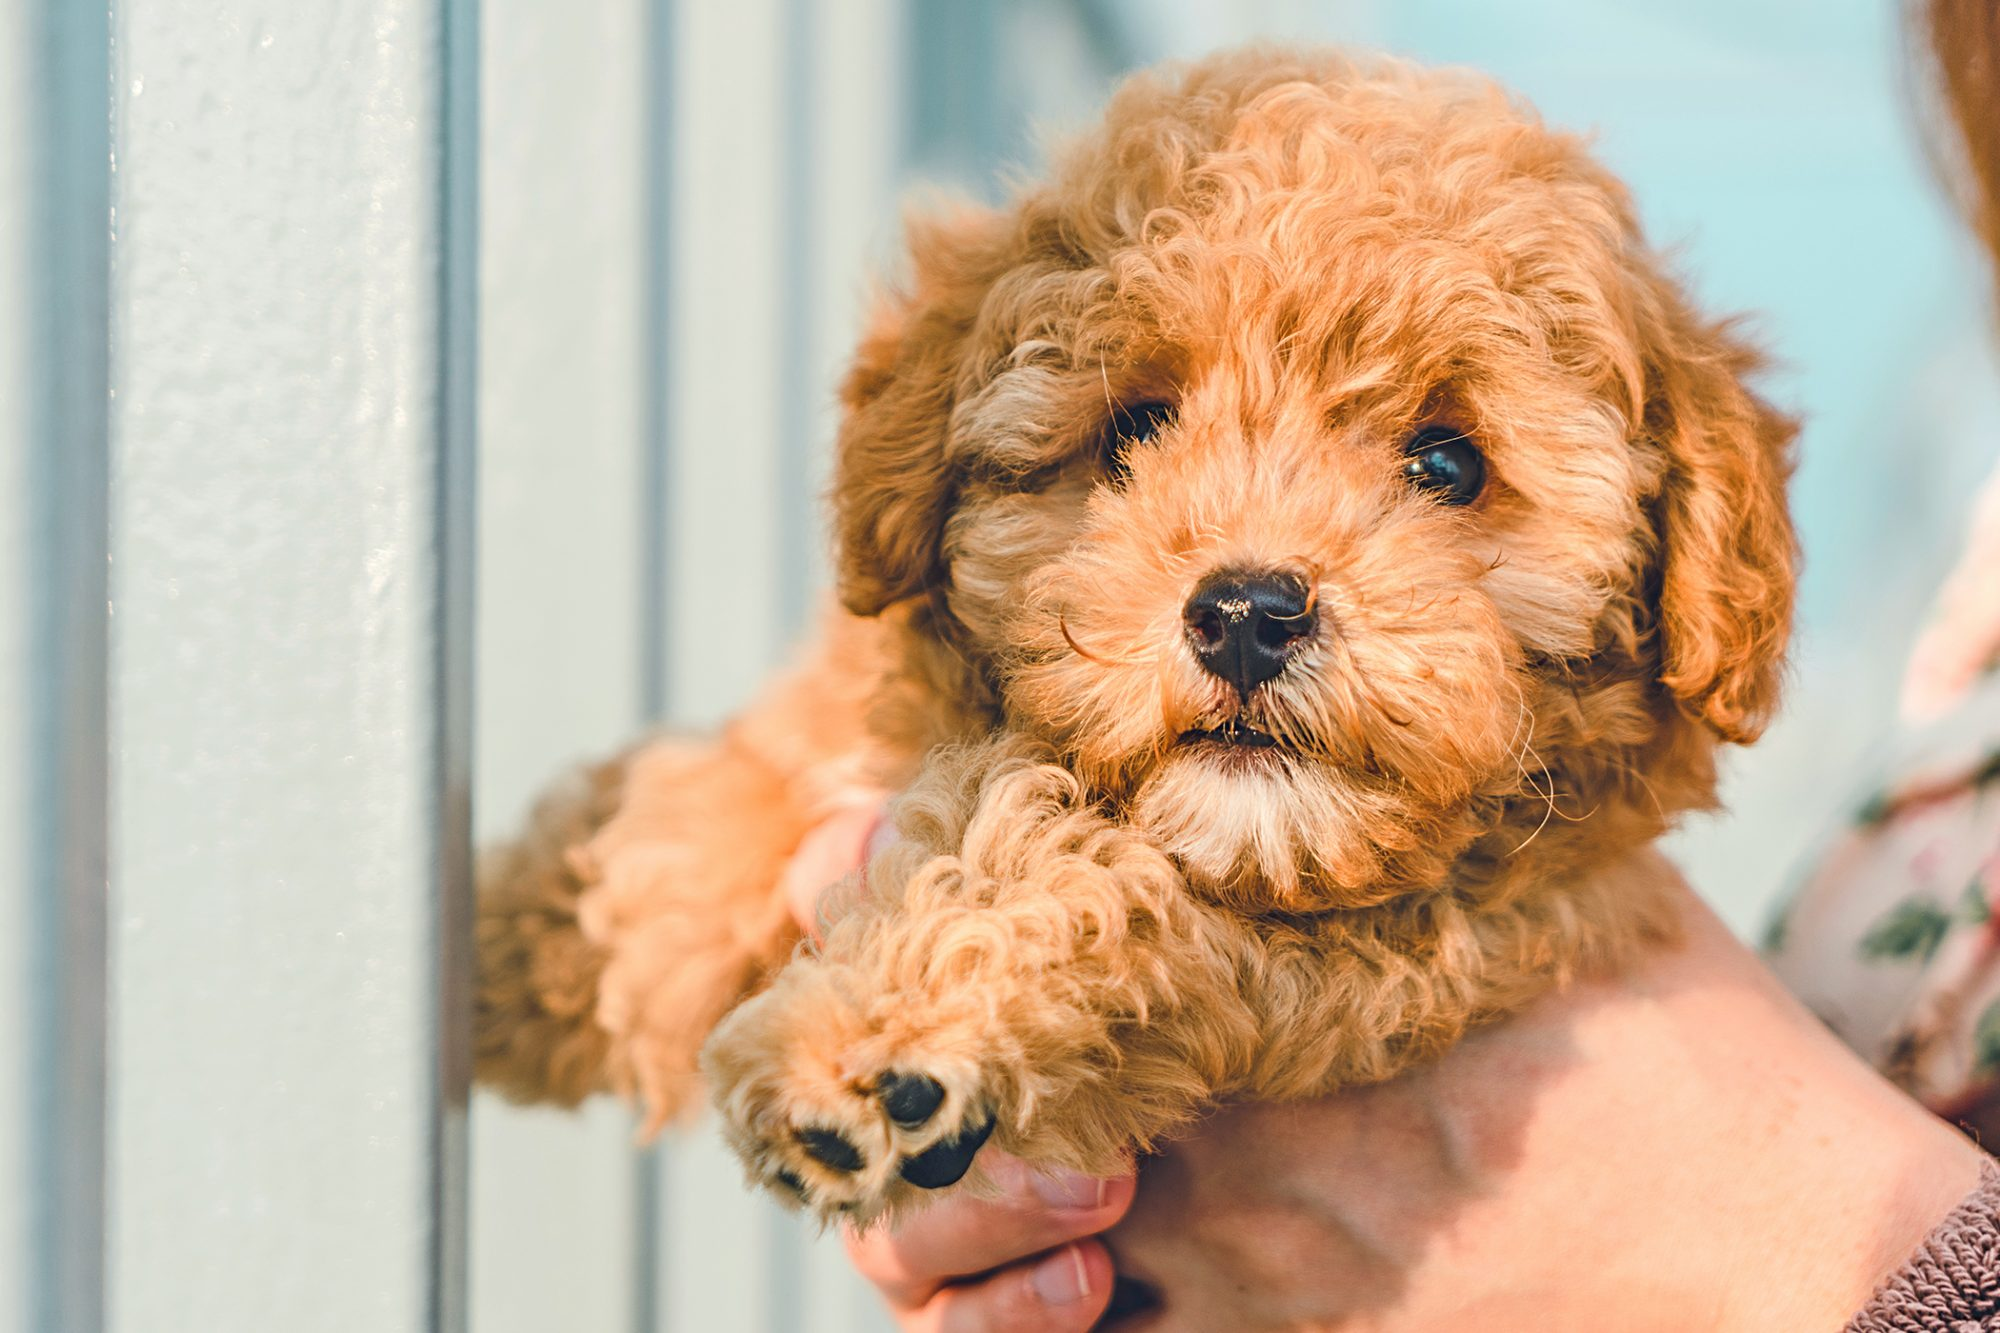 Fluffy blonde cavapoo puppy held by woman